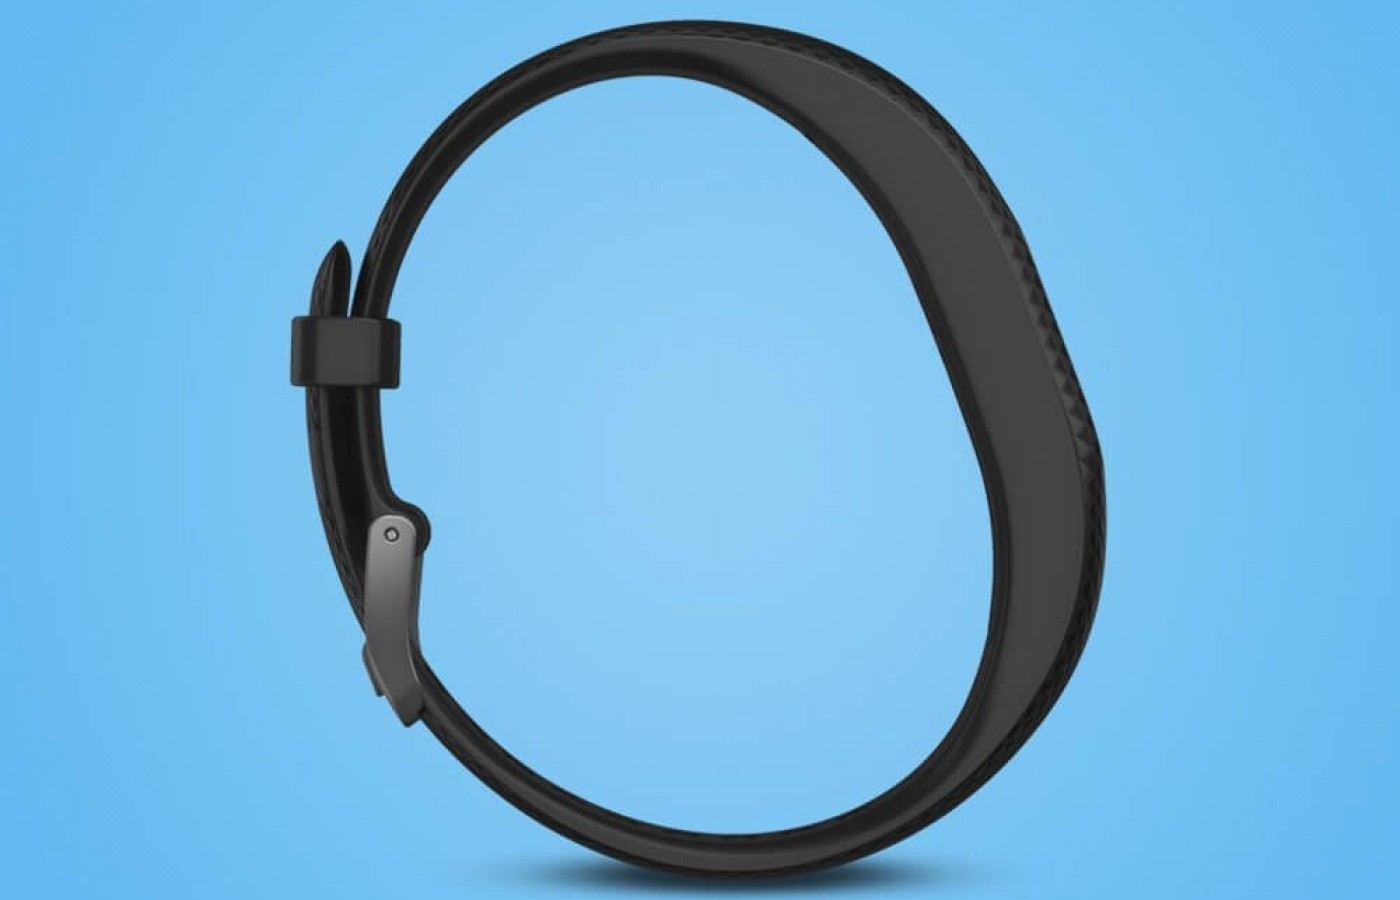 The thin, flexible band is durable and comfortable.